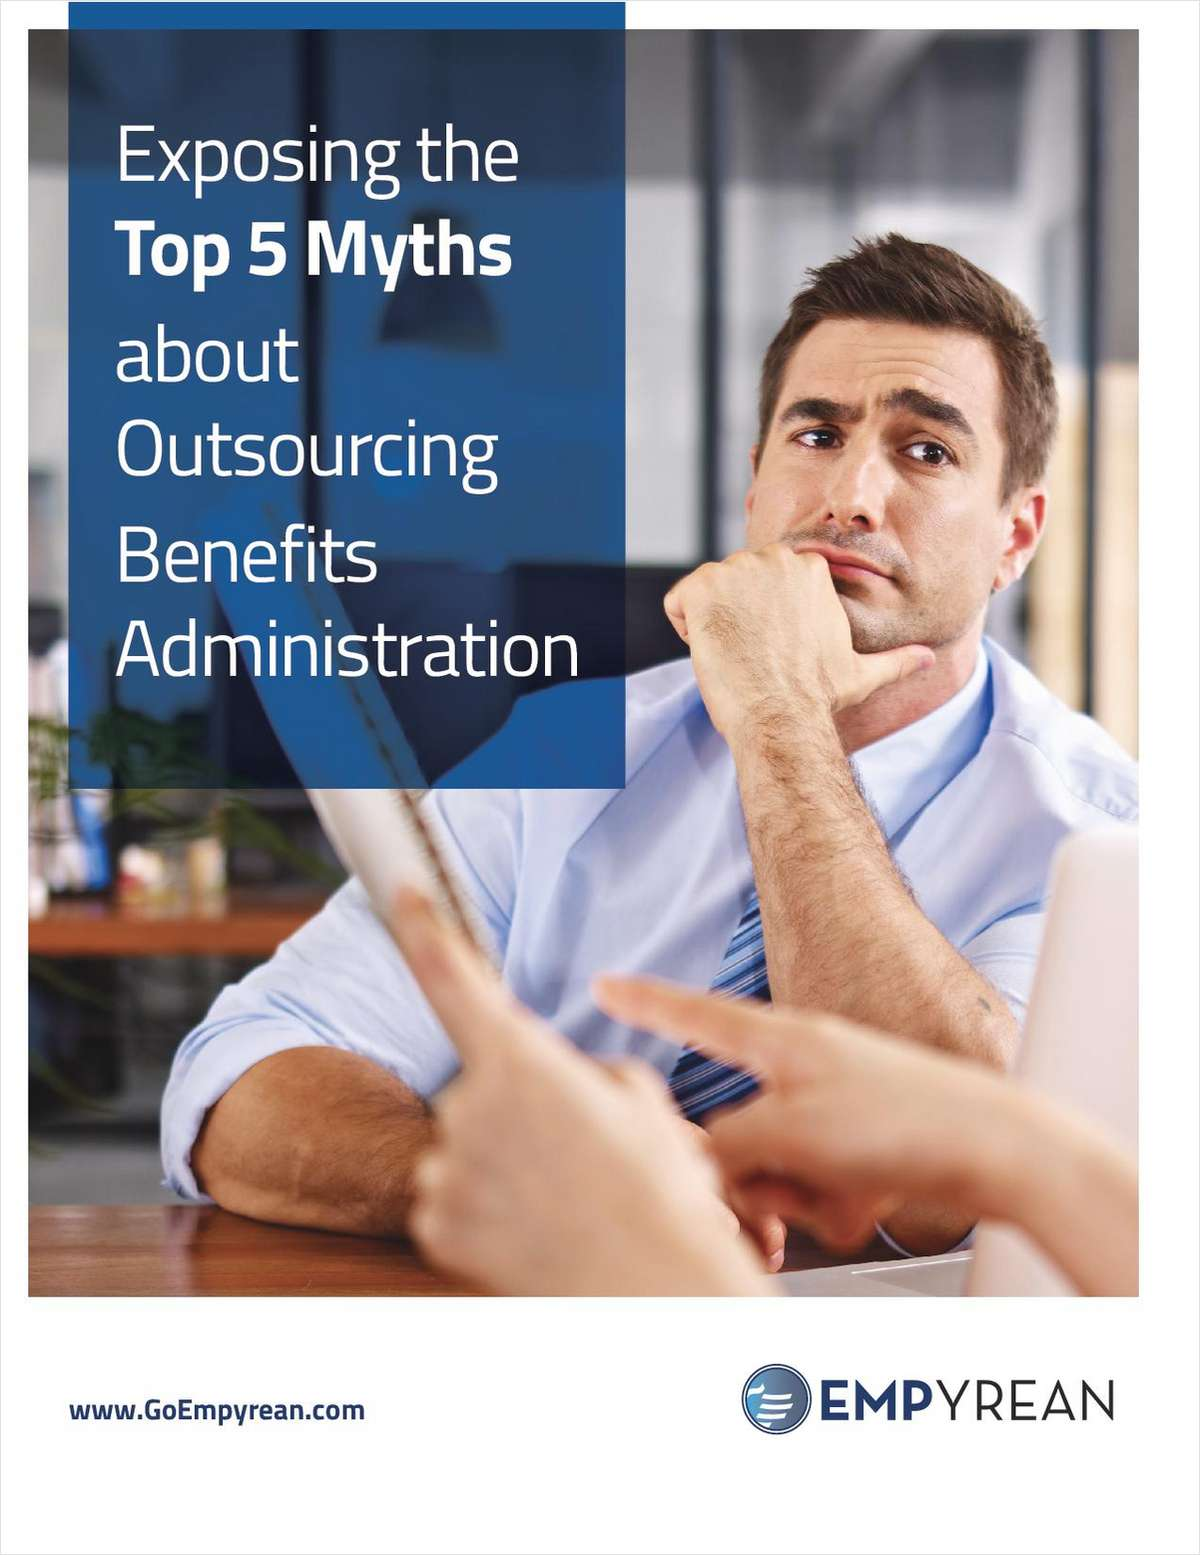 Exposing the Top 5 Myths about Outsourcing Benefits Administration